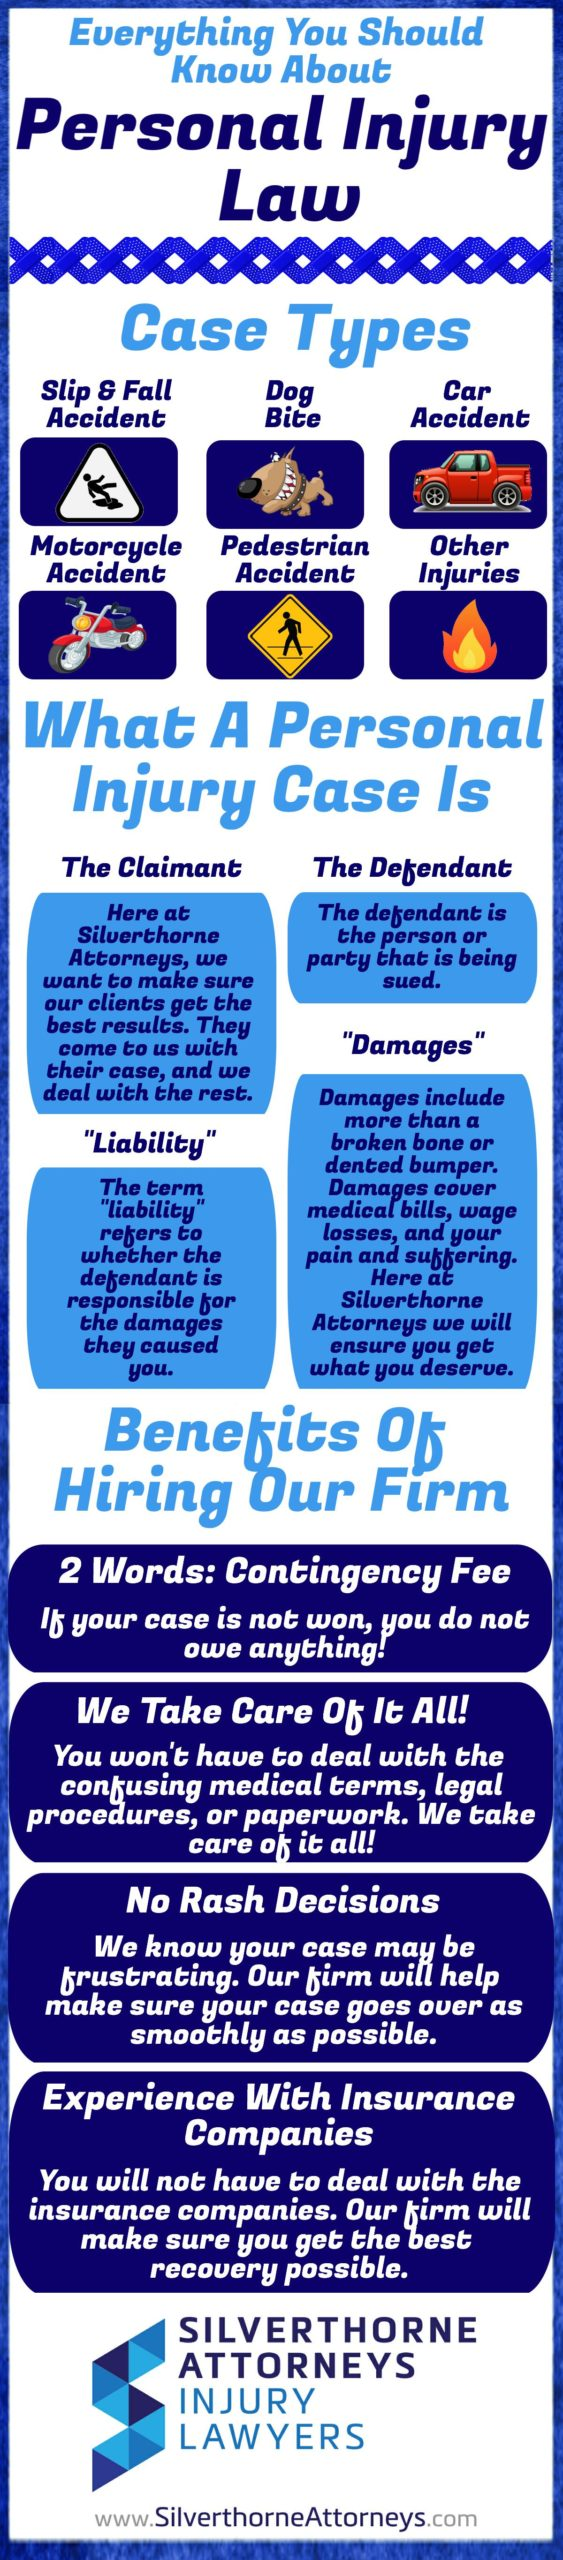 personal injury law infographic